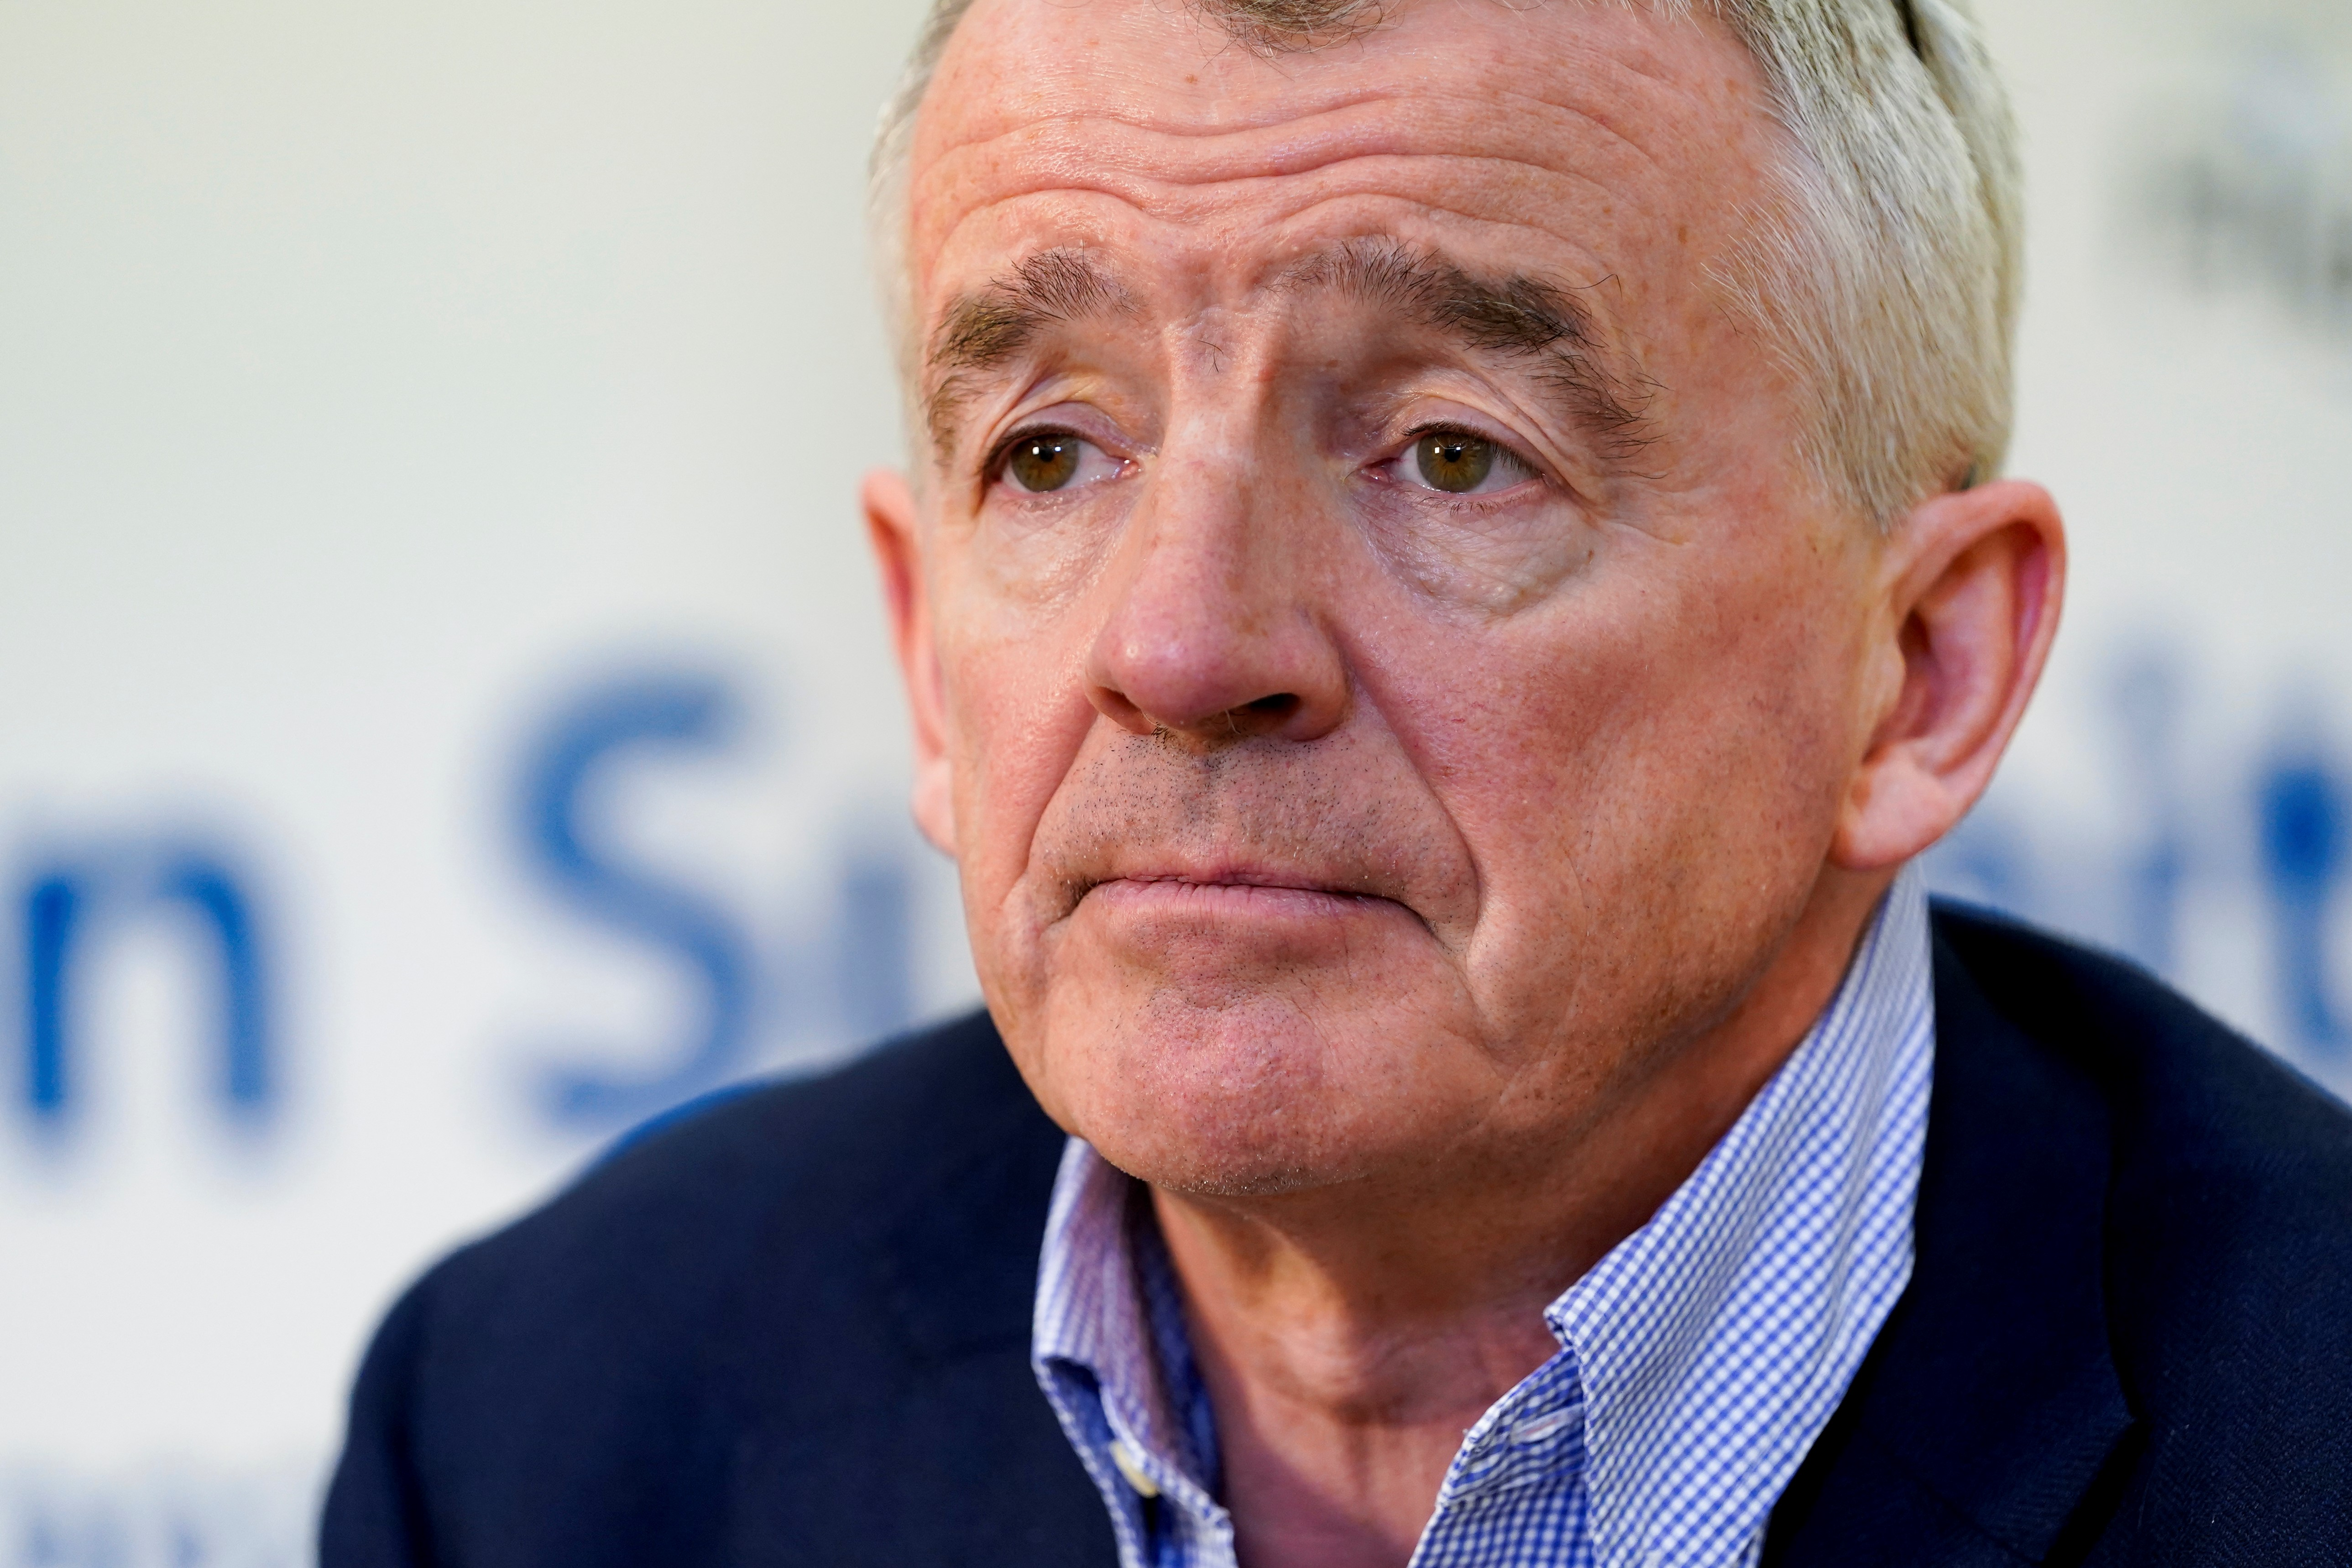 Ryanair CEO Michael O'Leary gestures during an AFP interview at A4E aviation summit in Brussels on March 3, 2020. (Photo by Kenzo TRIBOUILLARD / AFP) (Photo by KENZO TRIBOUILLARD/AFP via Getty Images)